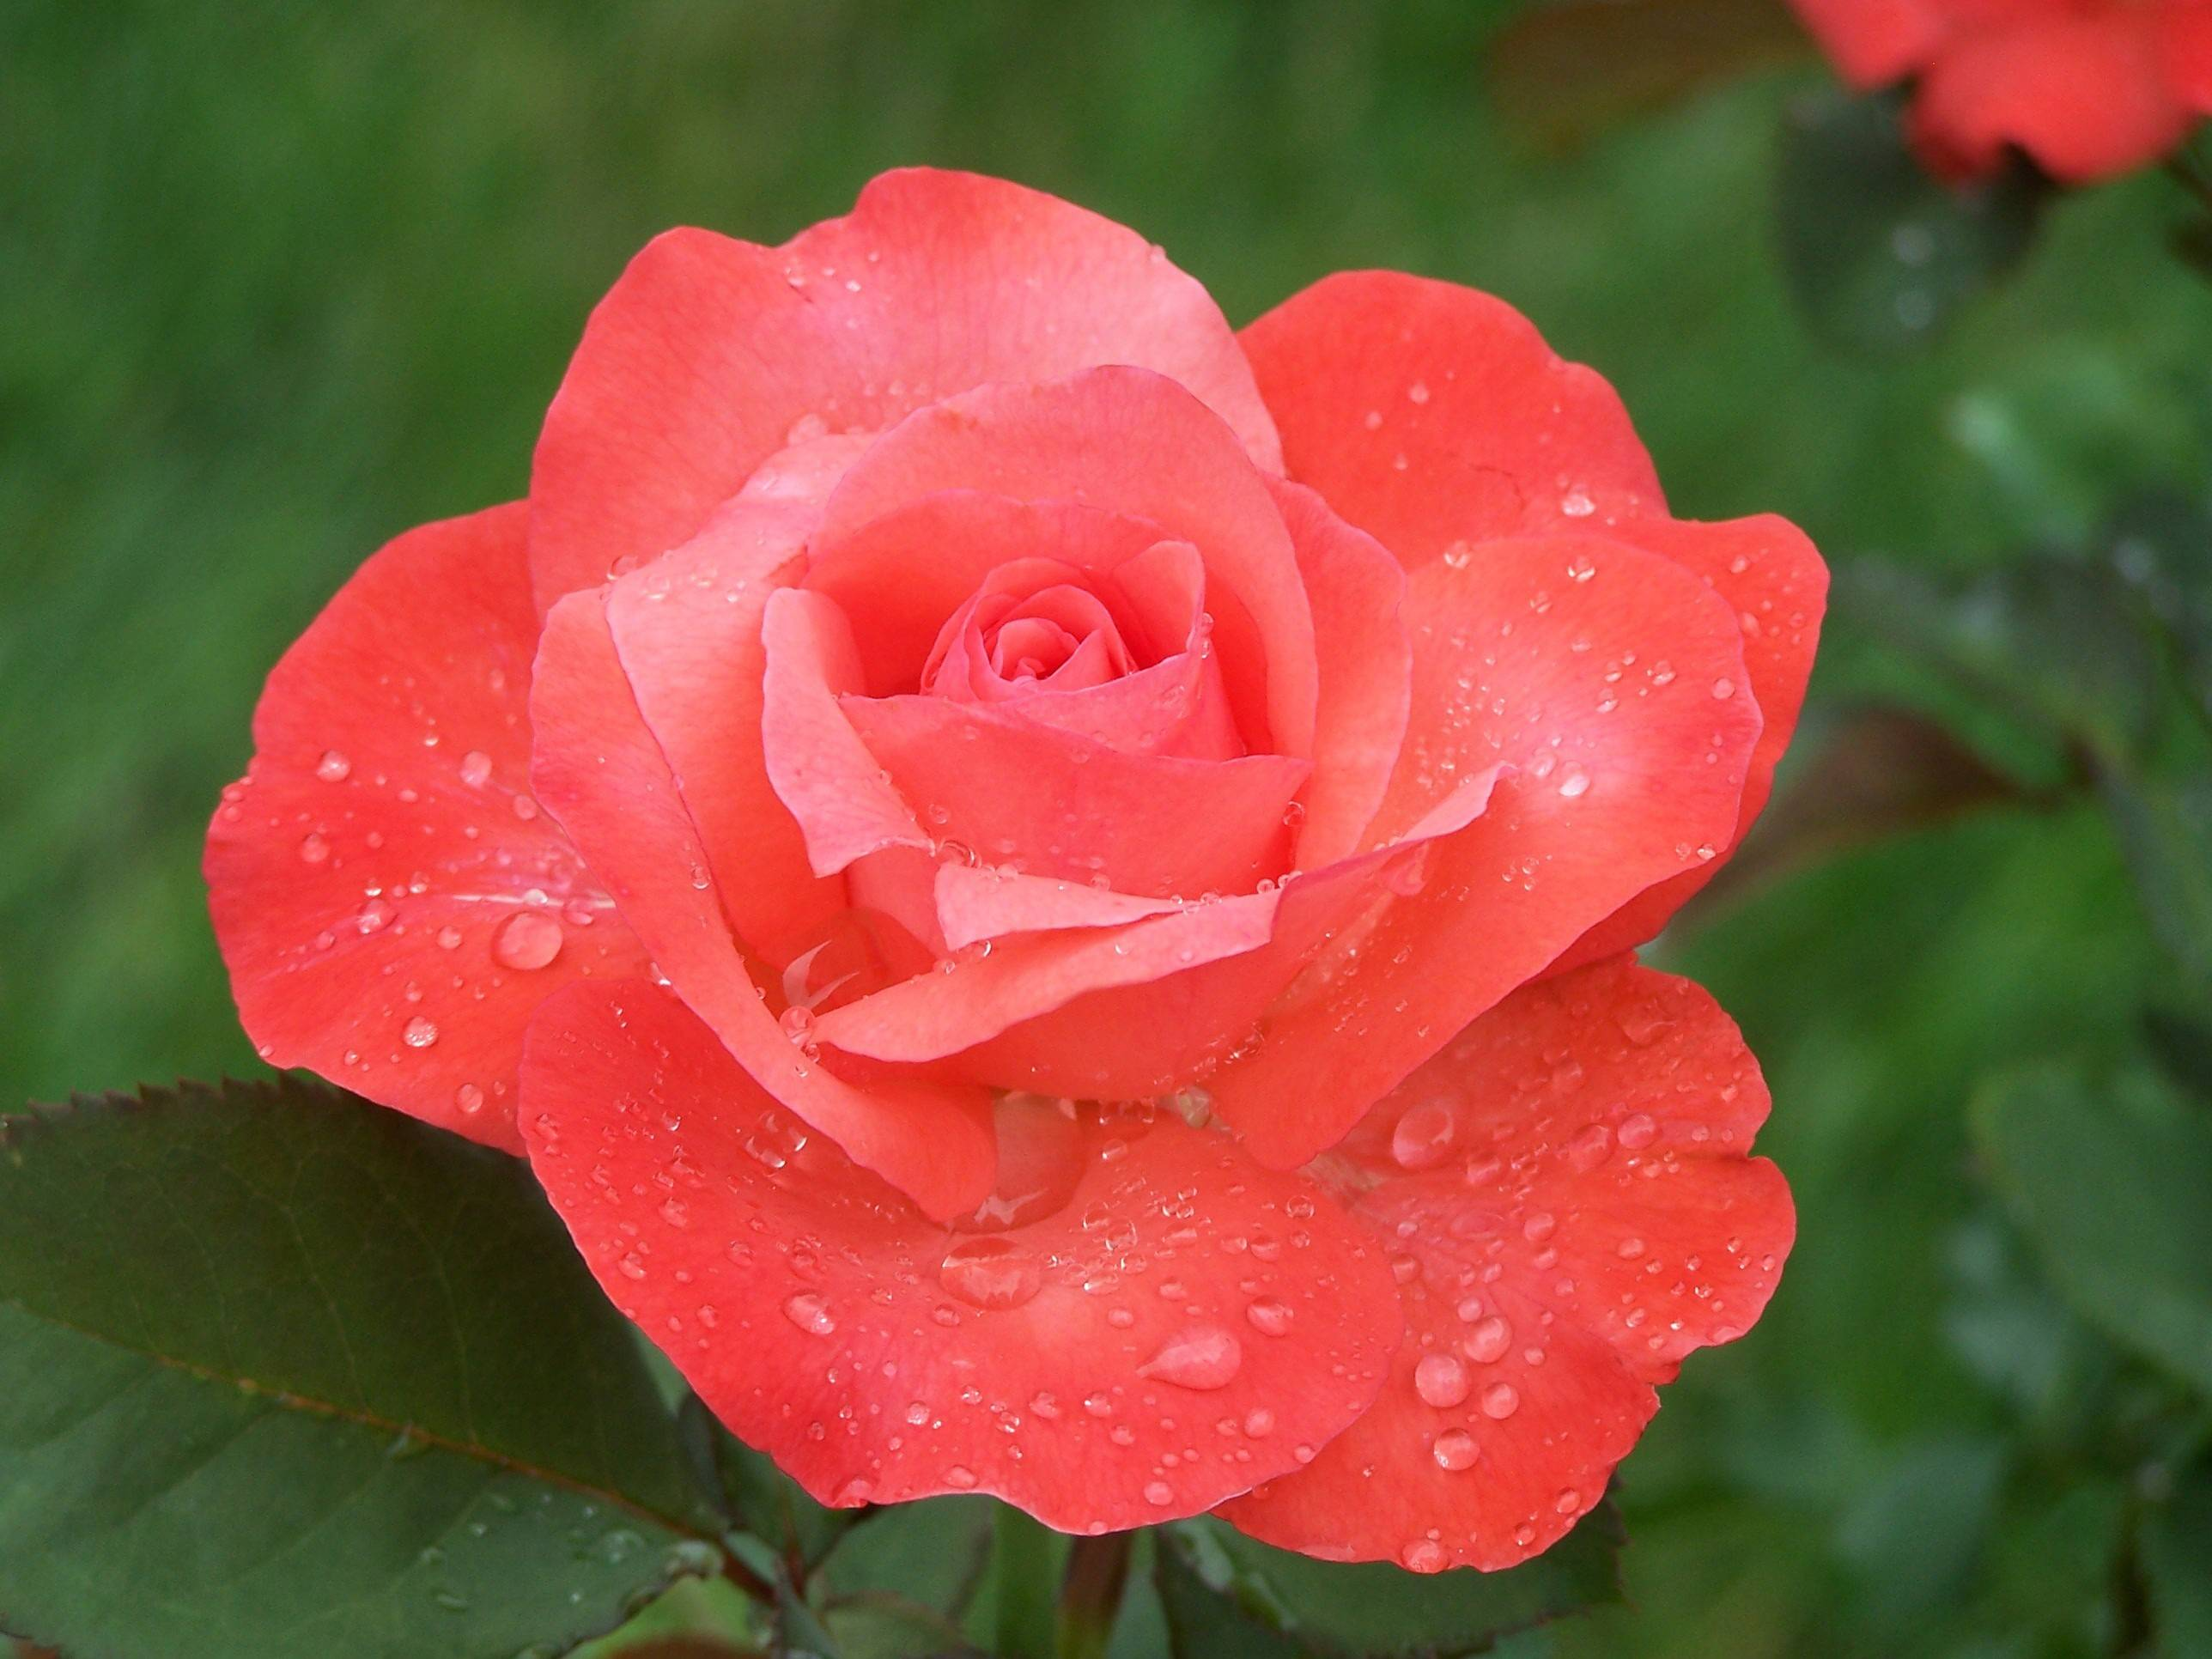 Pruning hybrid tea roses vigorously now will promote lots of beautiful flowers.